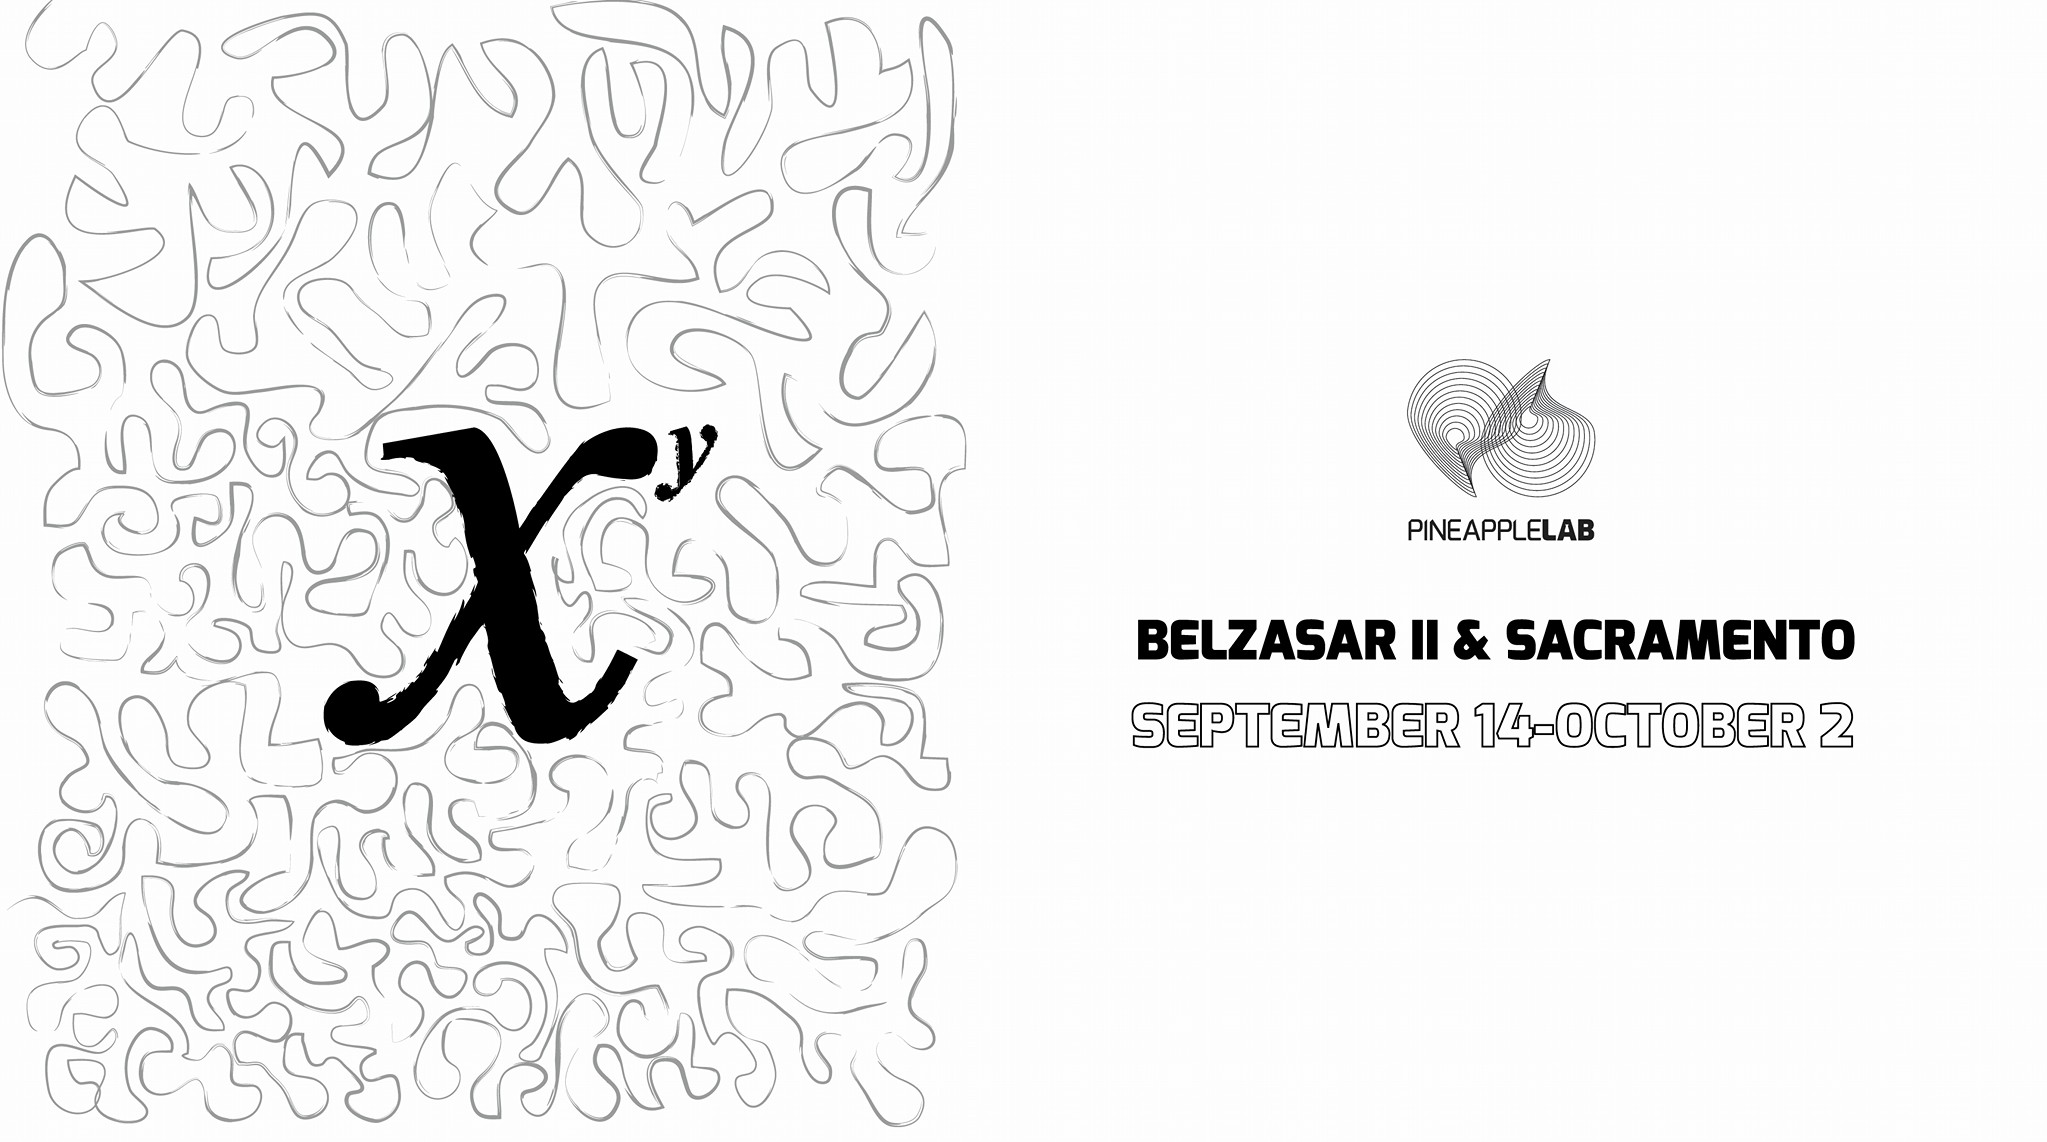 XY Exhibit Featuring the Works of Belzasar II and